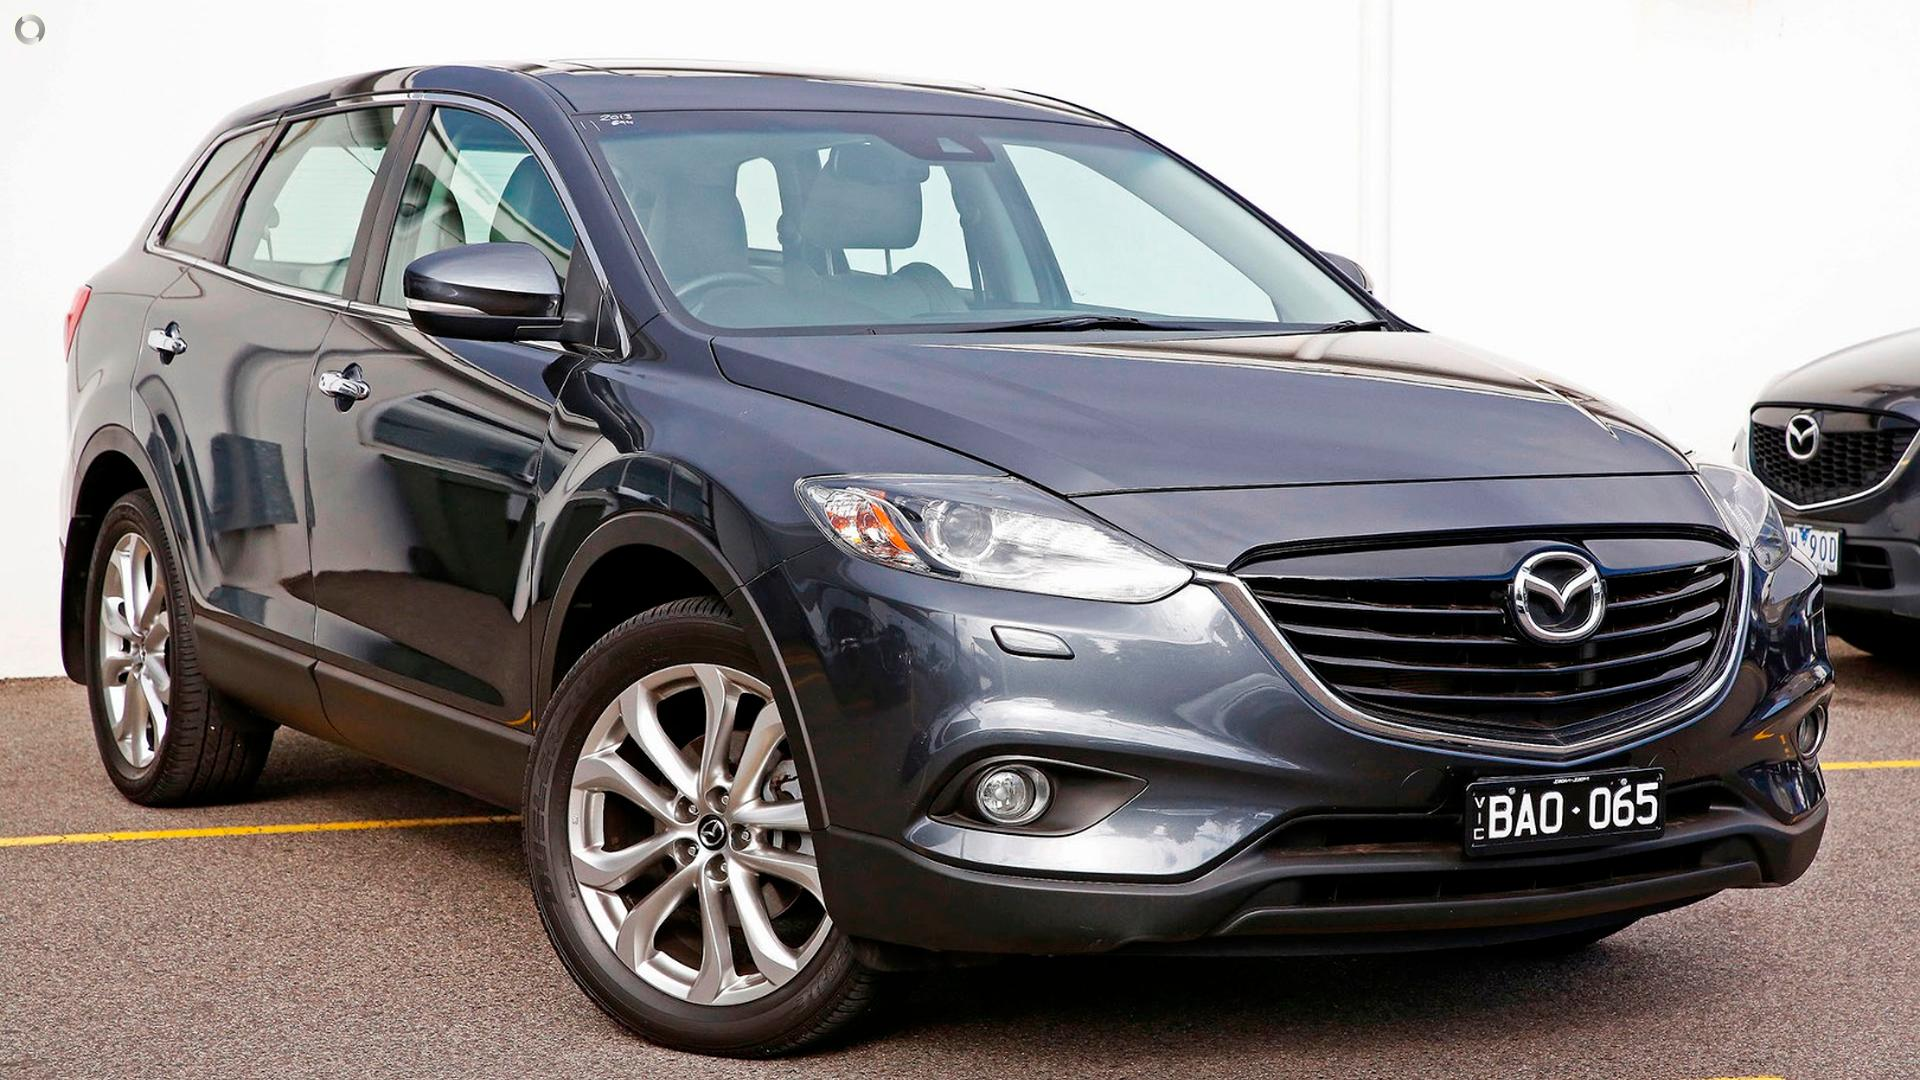 2013 Mazda CX-9 Grand Touring TB Series 5